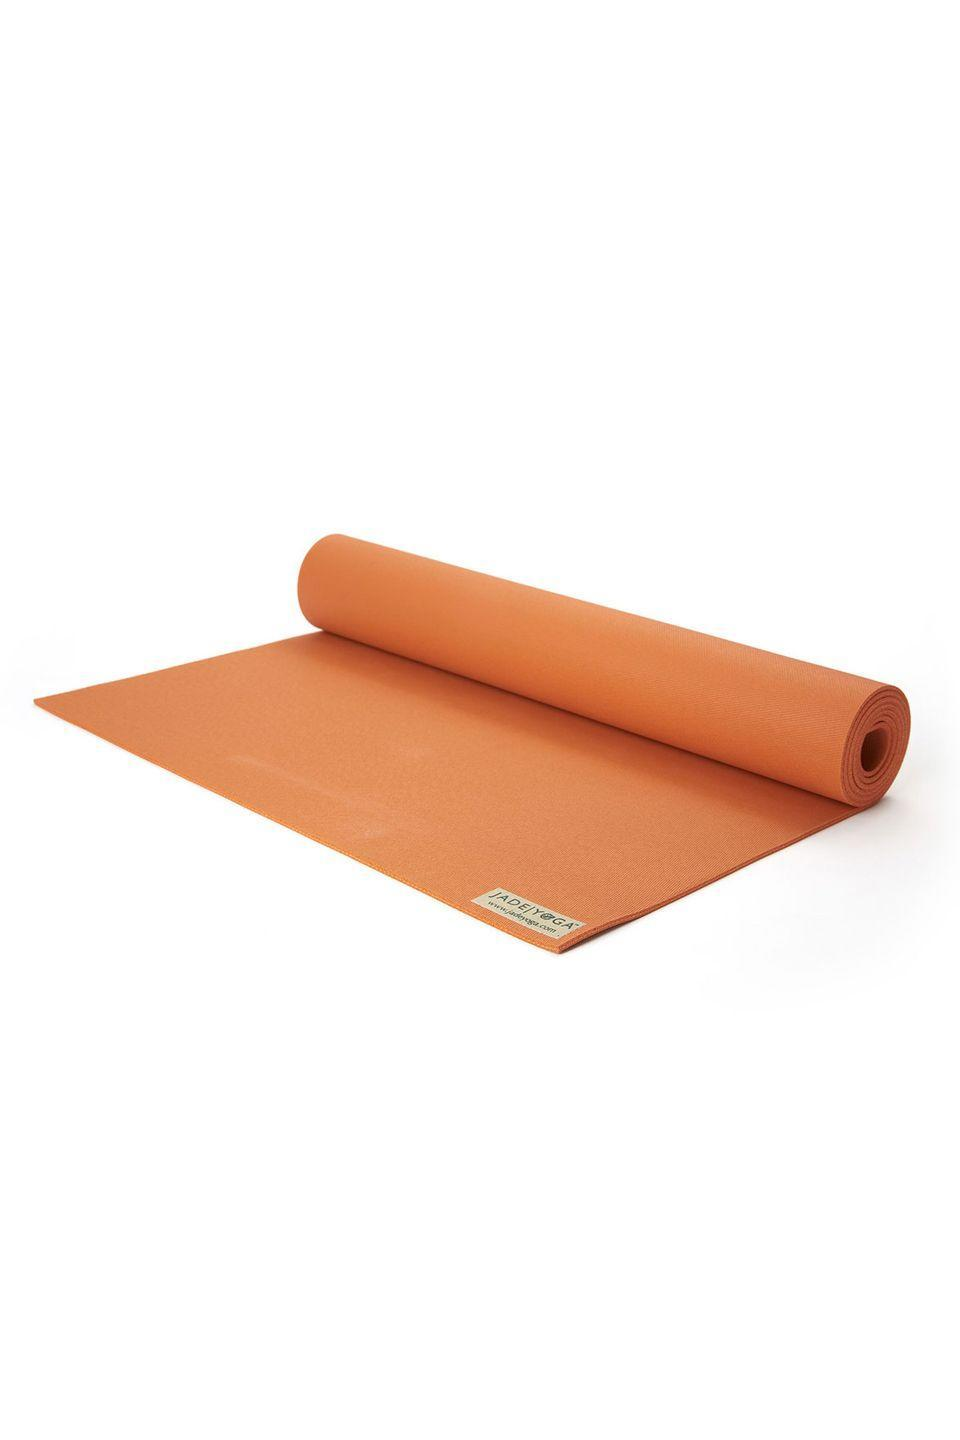 "<p><a class=""link rapid-noclick-resp"" href=""https://go.redirectingat.com?id=127X1599956&url=https%3A%2F%2Fwww.greenyogashop.com%2Fen%2Fharmony-professional-orange-yoga-mat&sref=https%3A%2F%2Fwww.harpersbazaar.com%2Fuk%2Fbeauty%2Ffitness-wellbeing%2Fg32183508%2Fbest-yoga-mats%2F"" rel=""nofollow noopener"" target=""_blank"" data-ylk=""slk:SHOP NOW"">SHOP NOW</a></p><p>Made from natural, completely bio-degradable rubber, Jade Yoga's orange mat is a little different from your typical styles due to its open weave. This texture gives it an unrelenting grip, which holds up even when you have wet hands. If this wasn't enough to convince you, the business will plant a tree for every one bought.</p><p>Natural rubber yoga mat, £68.50, greenyogashop.com</p>"